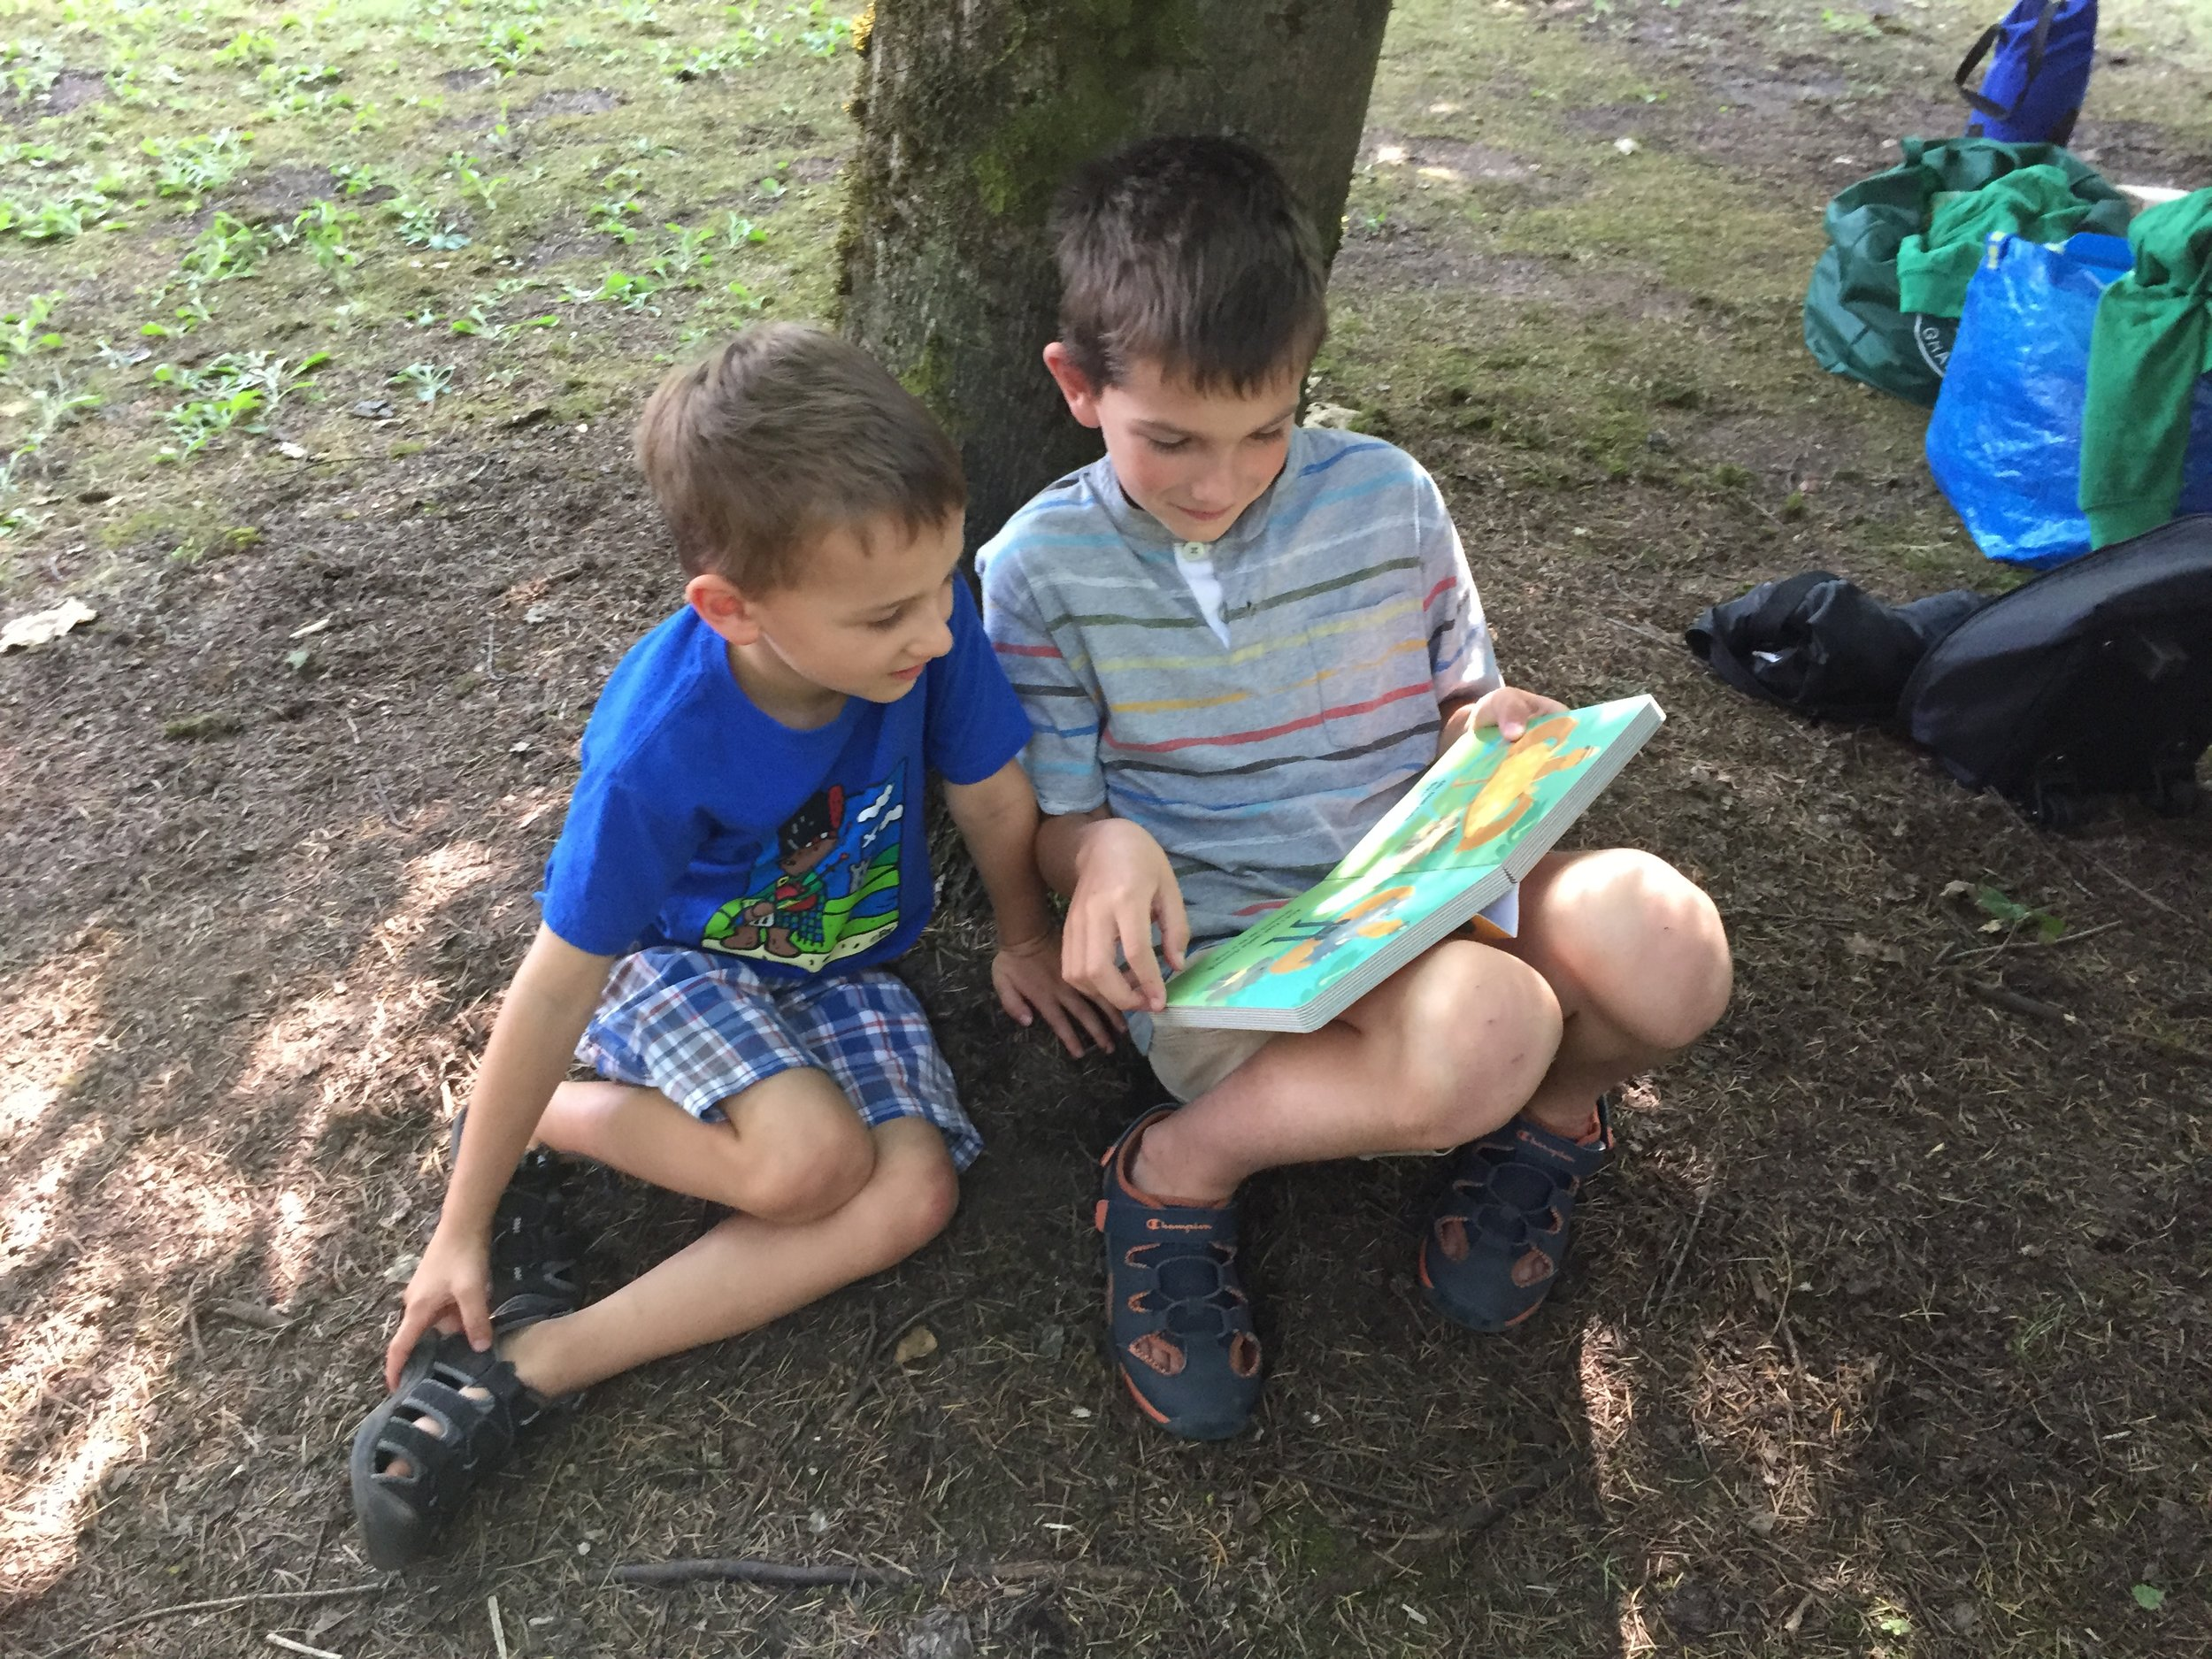 Two brothers read Get Dressed Sasquatch at the 2017 Oregon Bigfoot Festival (Troutdale, Oregon).